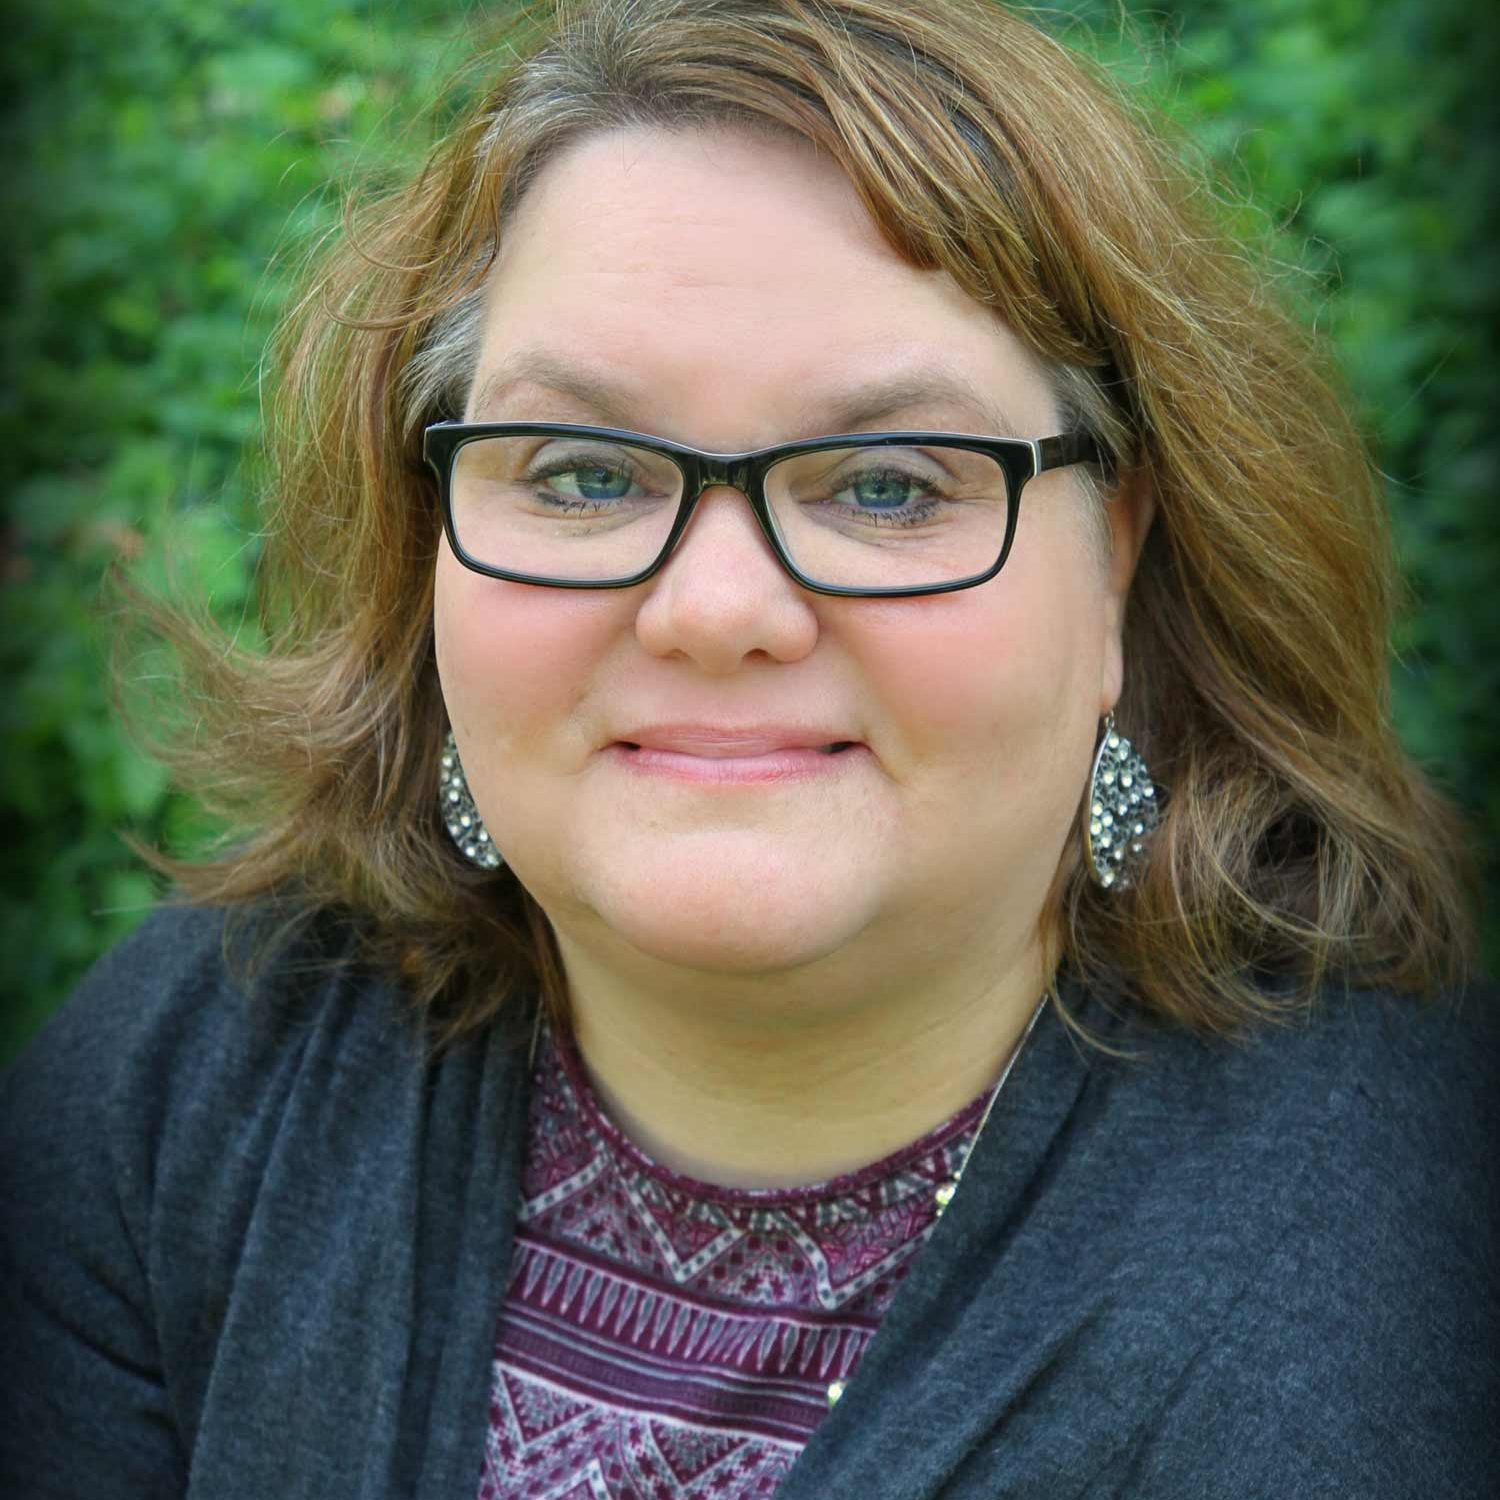 julia-wade-sunstone-wellness-mentor-ohio-therapist-portrait